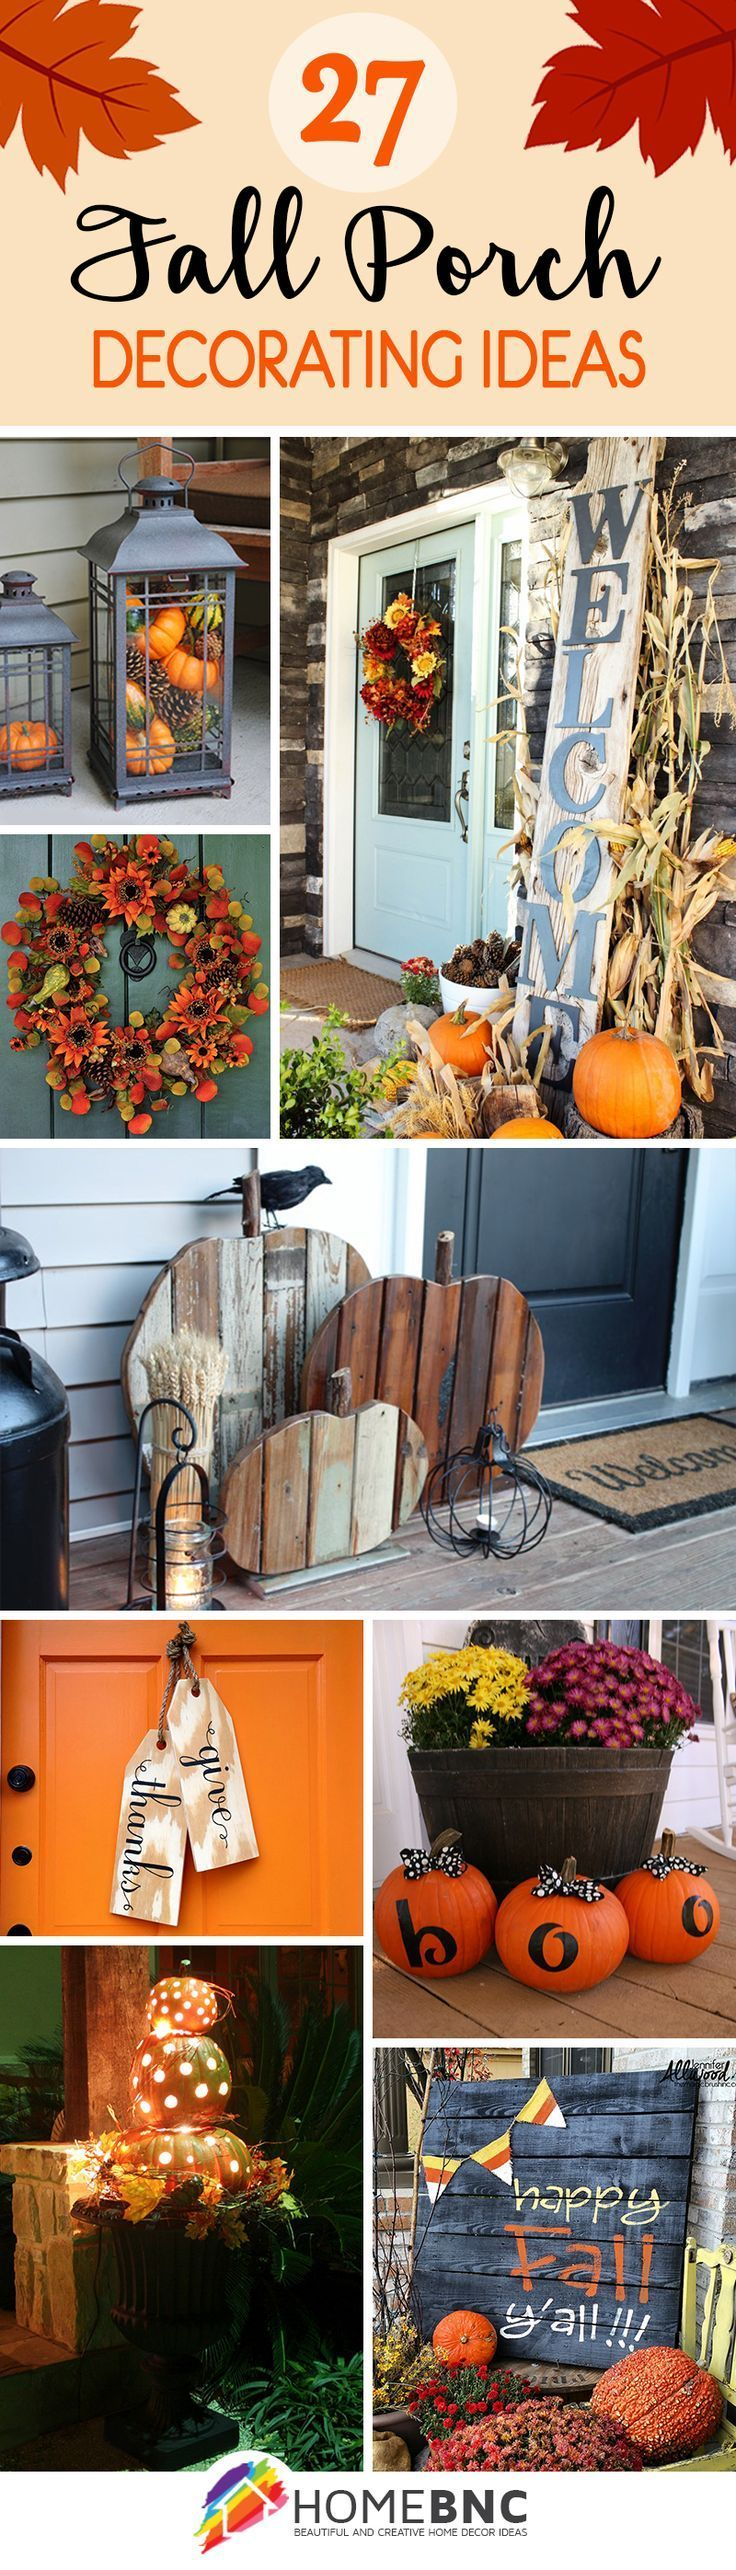 Doors pleasant fall decorating ideas for outside pinterest autumn - 27 Creative Fall Porch Decorating Ideas To Make Yours Unforgettable